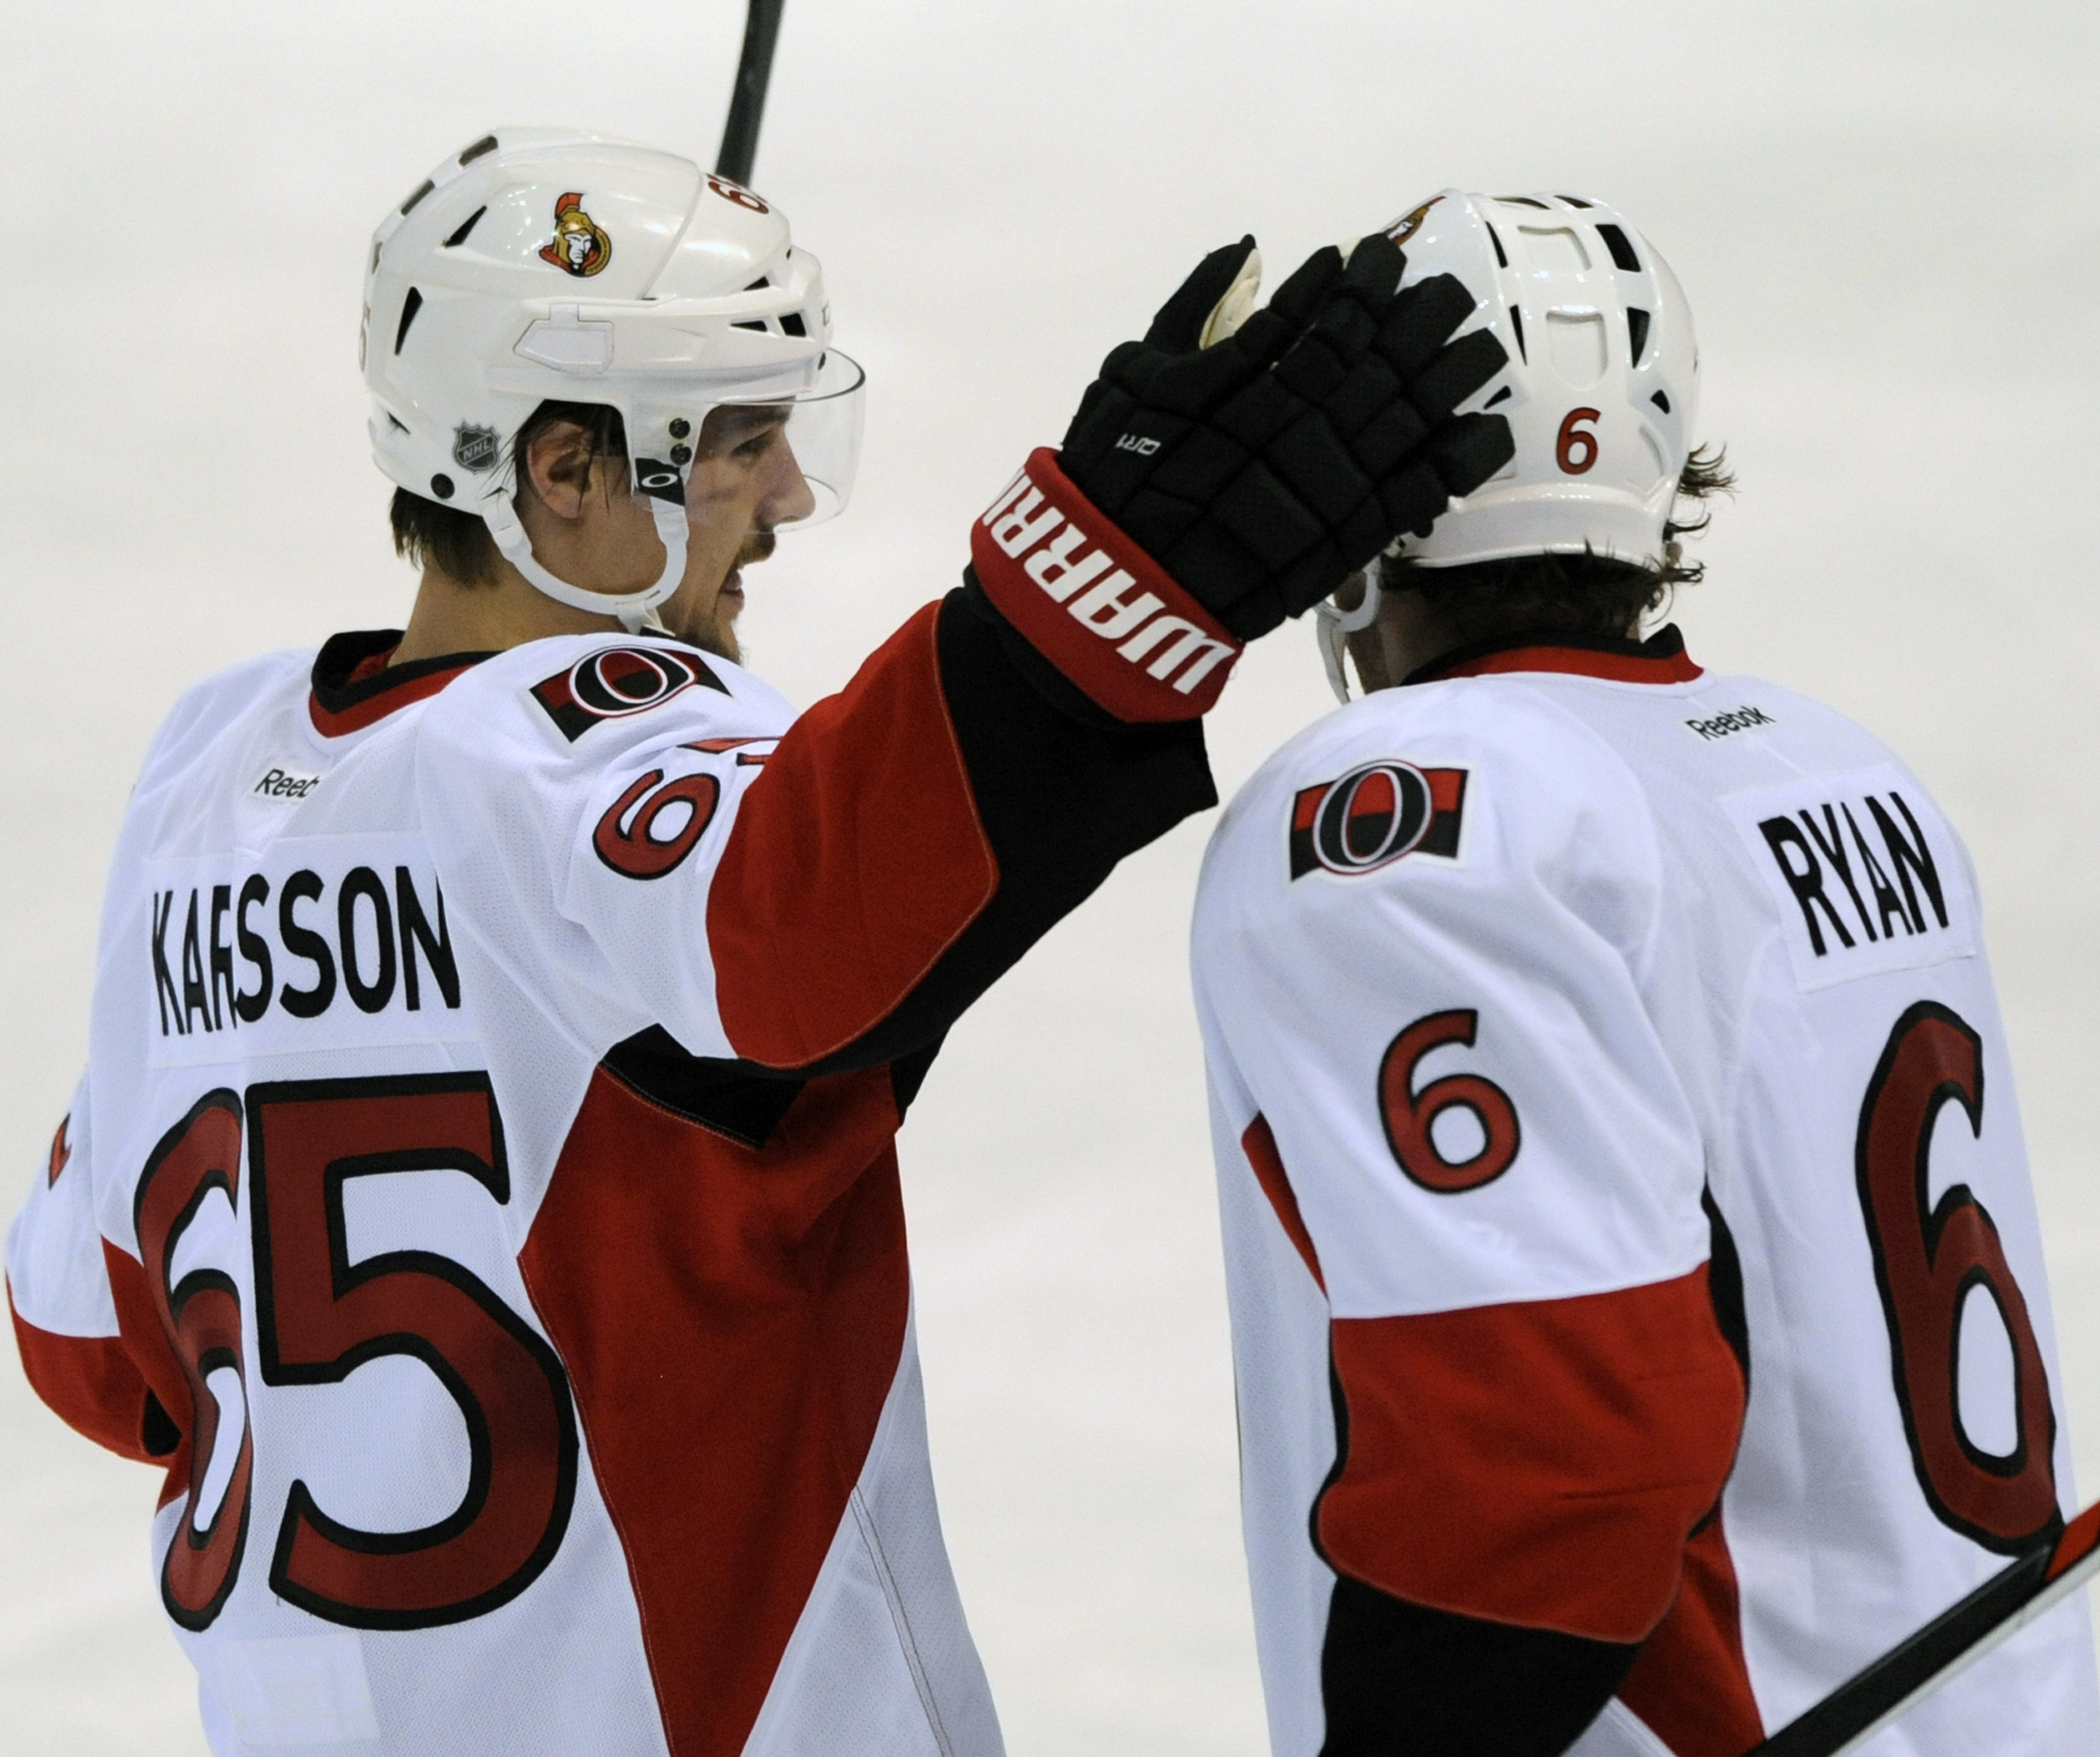 Ottawa Senators' Erik Karlsson (65), of Sweden, congratulates teammate Bobby Ryan (6) on his goal against the St. Louis Blues during the third period of an NHL hockey game, Monday, Jan. 4, 2016, in St. Louis. (AP Photo/Bill Boyce)